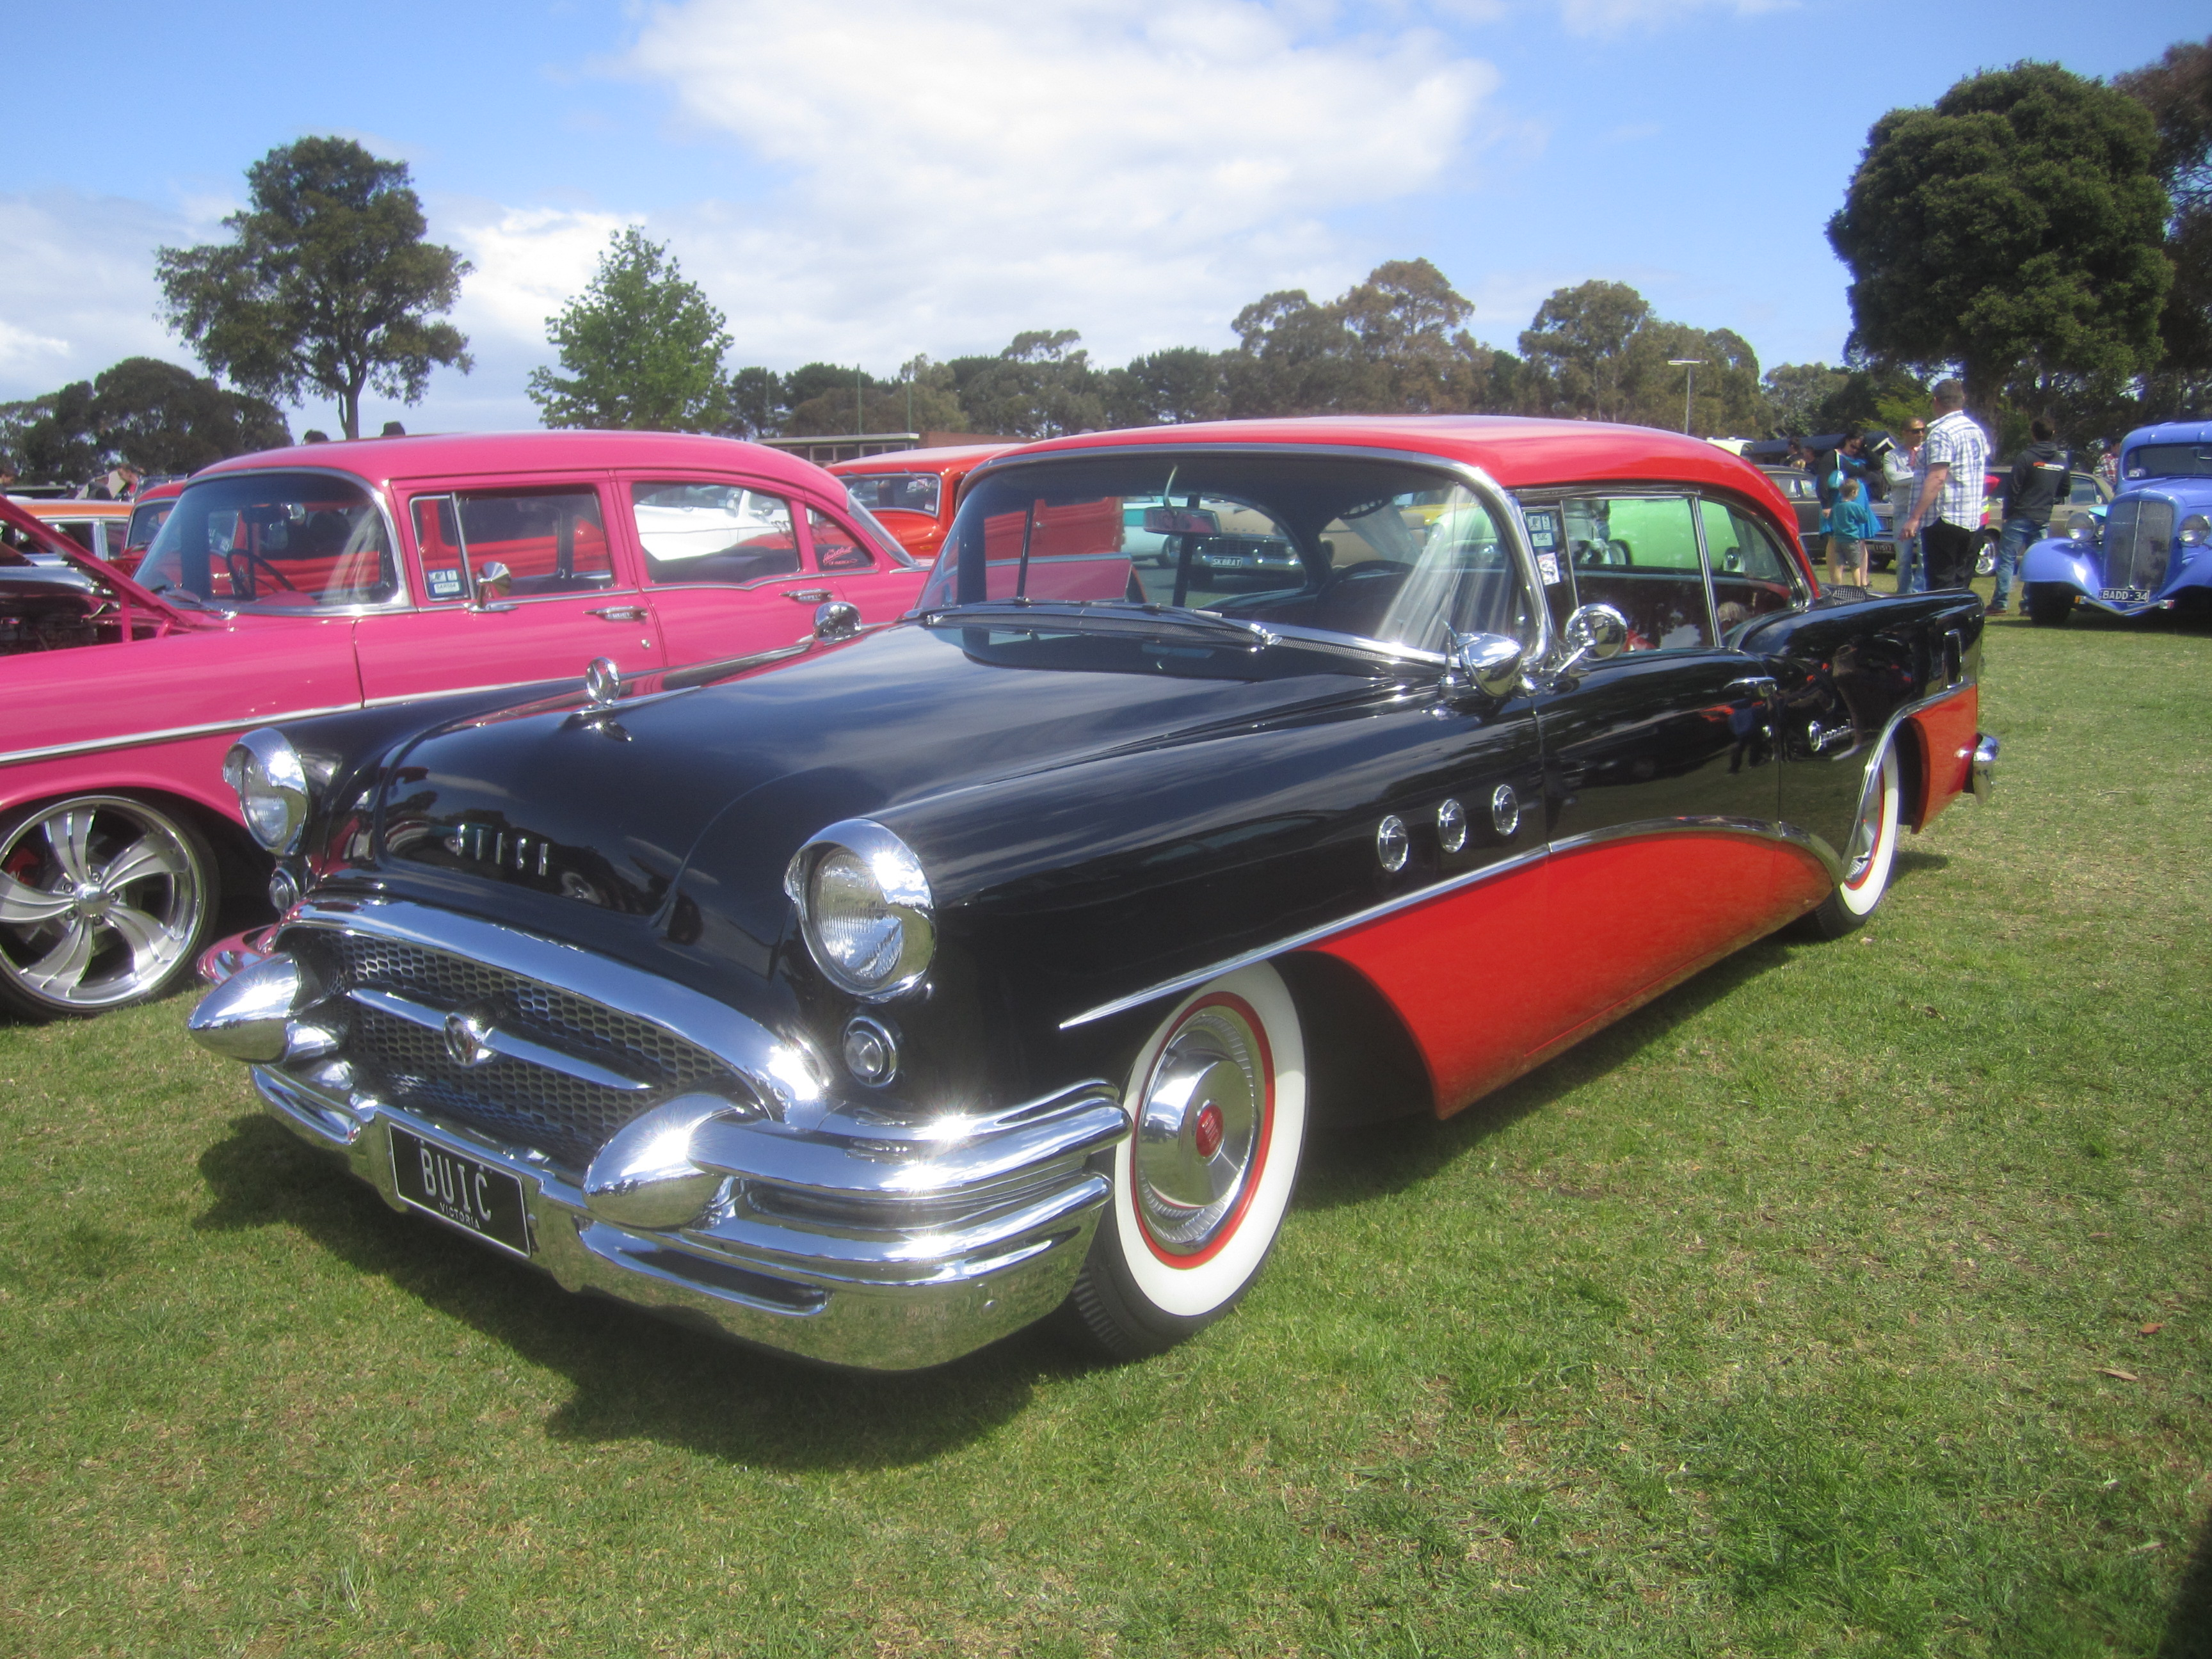 Pin 1949 buick roadmaster convertible 1 32 scale on pinterest for 1955 buick special 2 door